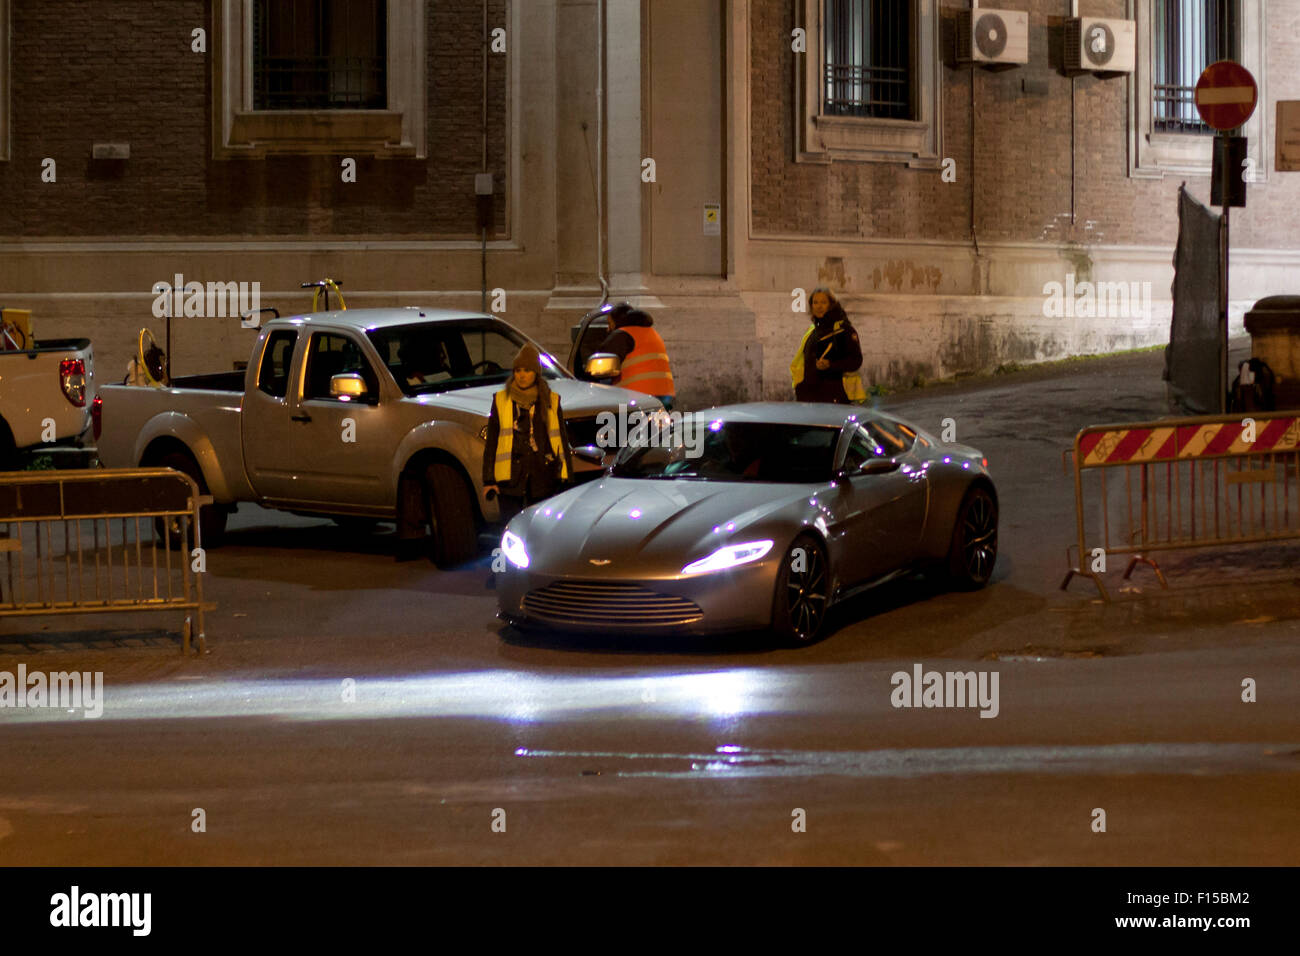 rome, italy. 8th march, 2015. filming car chase scene for james